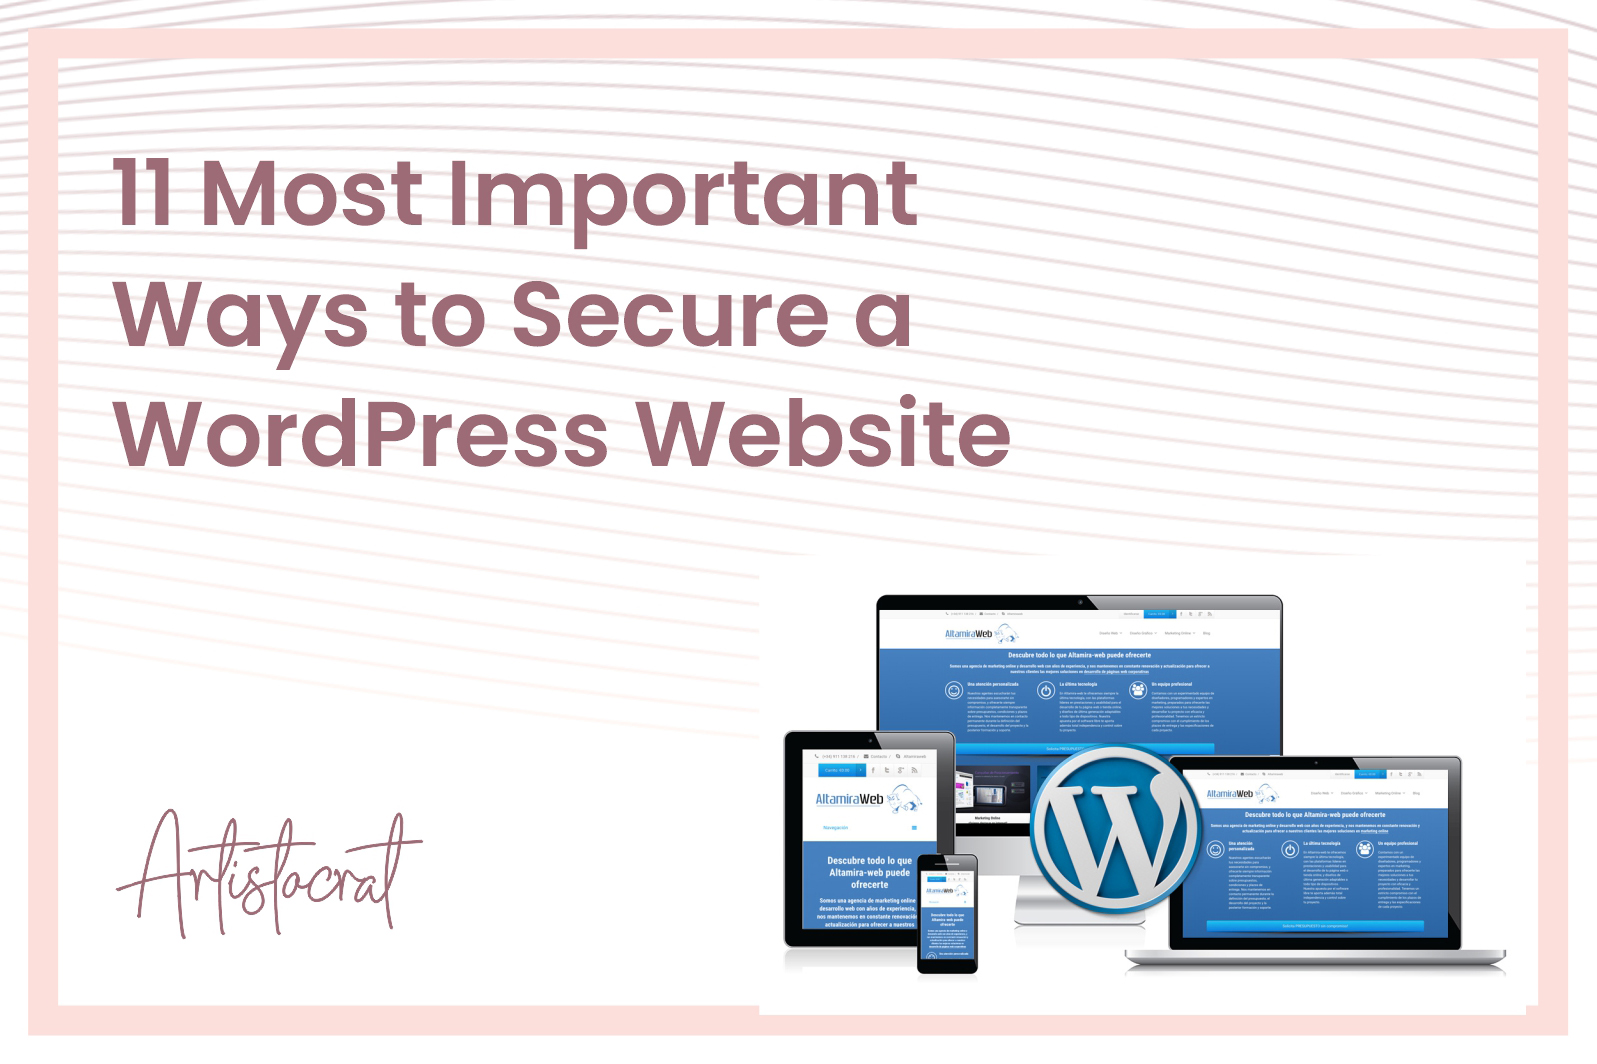 11-Most-Important-Ways-Secure-Wordpress-Website